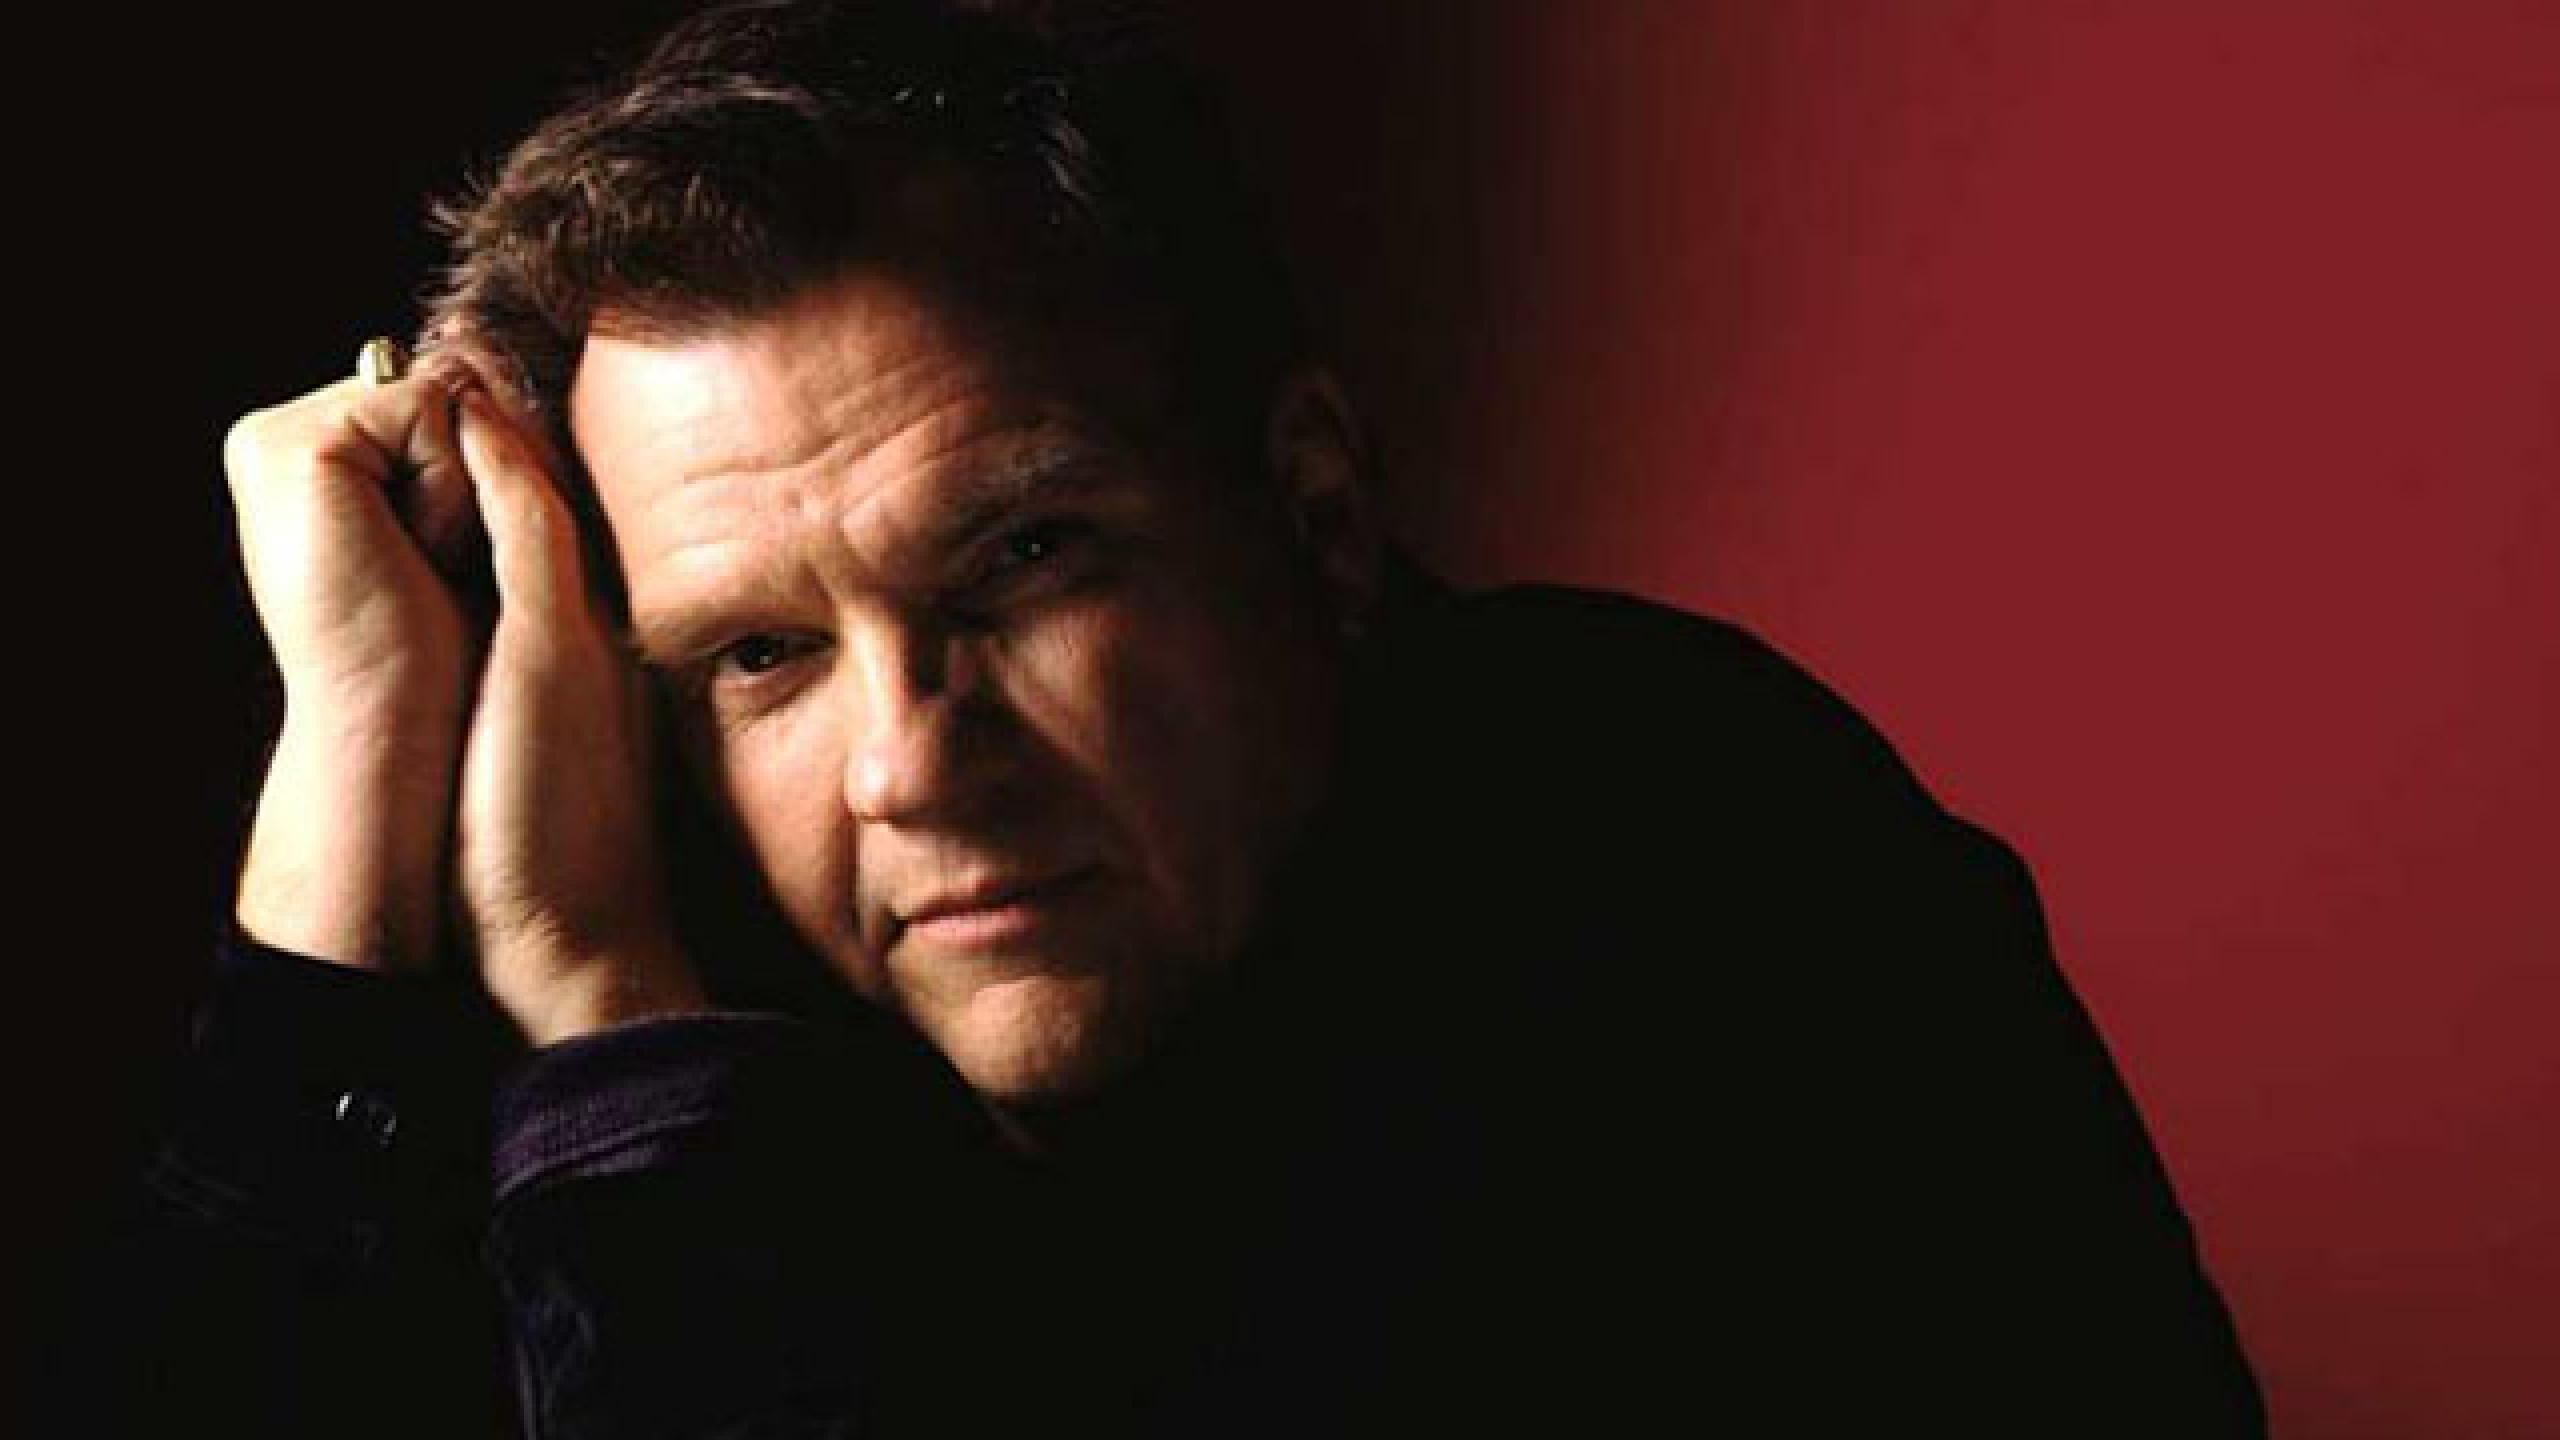 Meatloaf Tour Dates 2020 Meat Loaf tour dates 2019 2020. Meat Loaf tickets and concerts